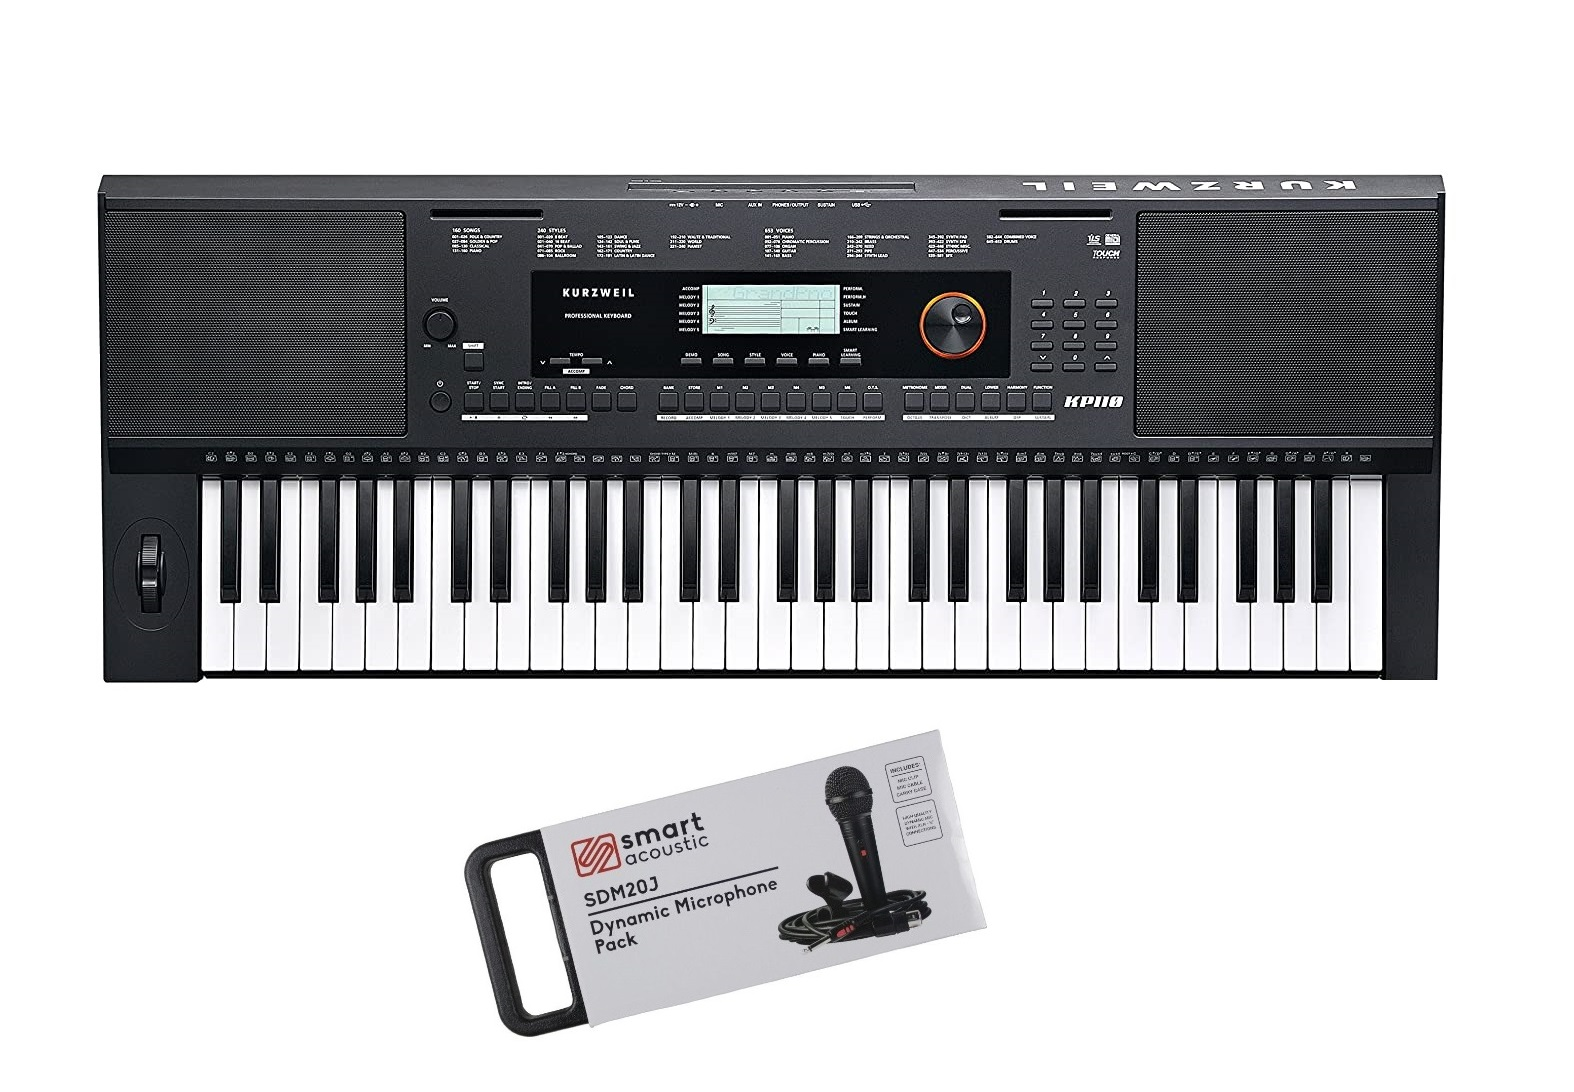 Kurzweil KP110 LB 61 keys Arranger Keyboard Black with free Microphone